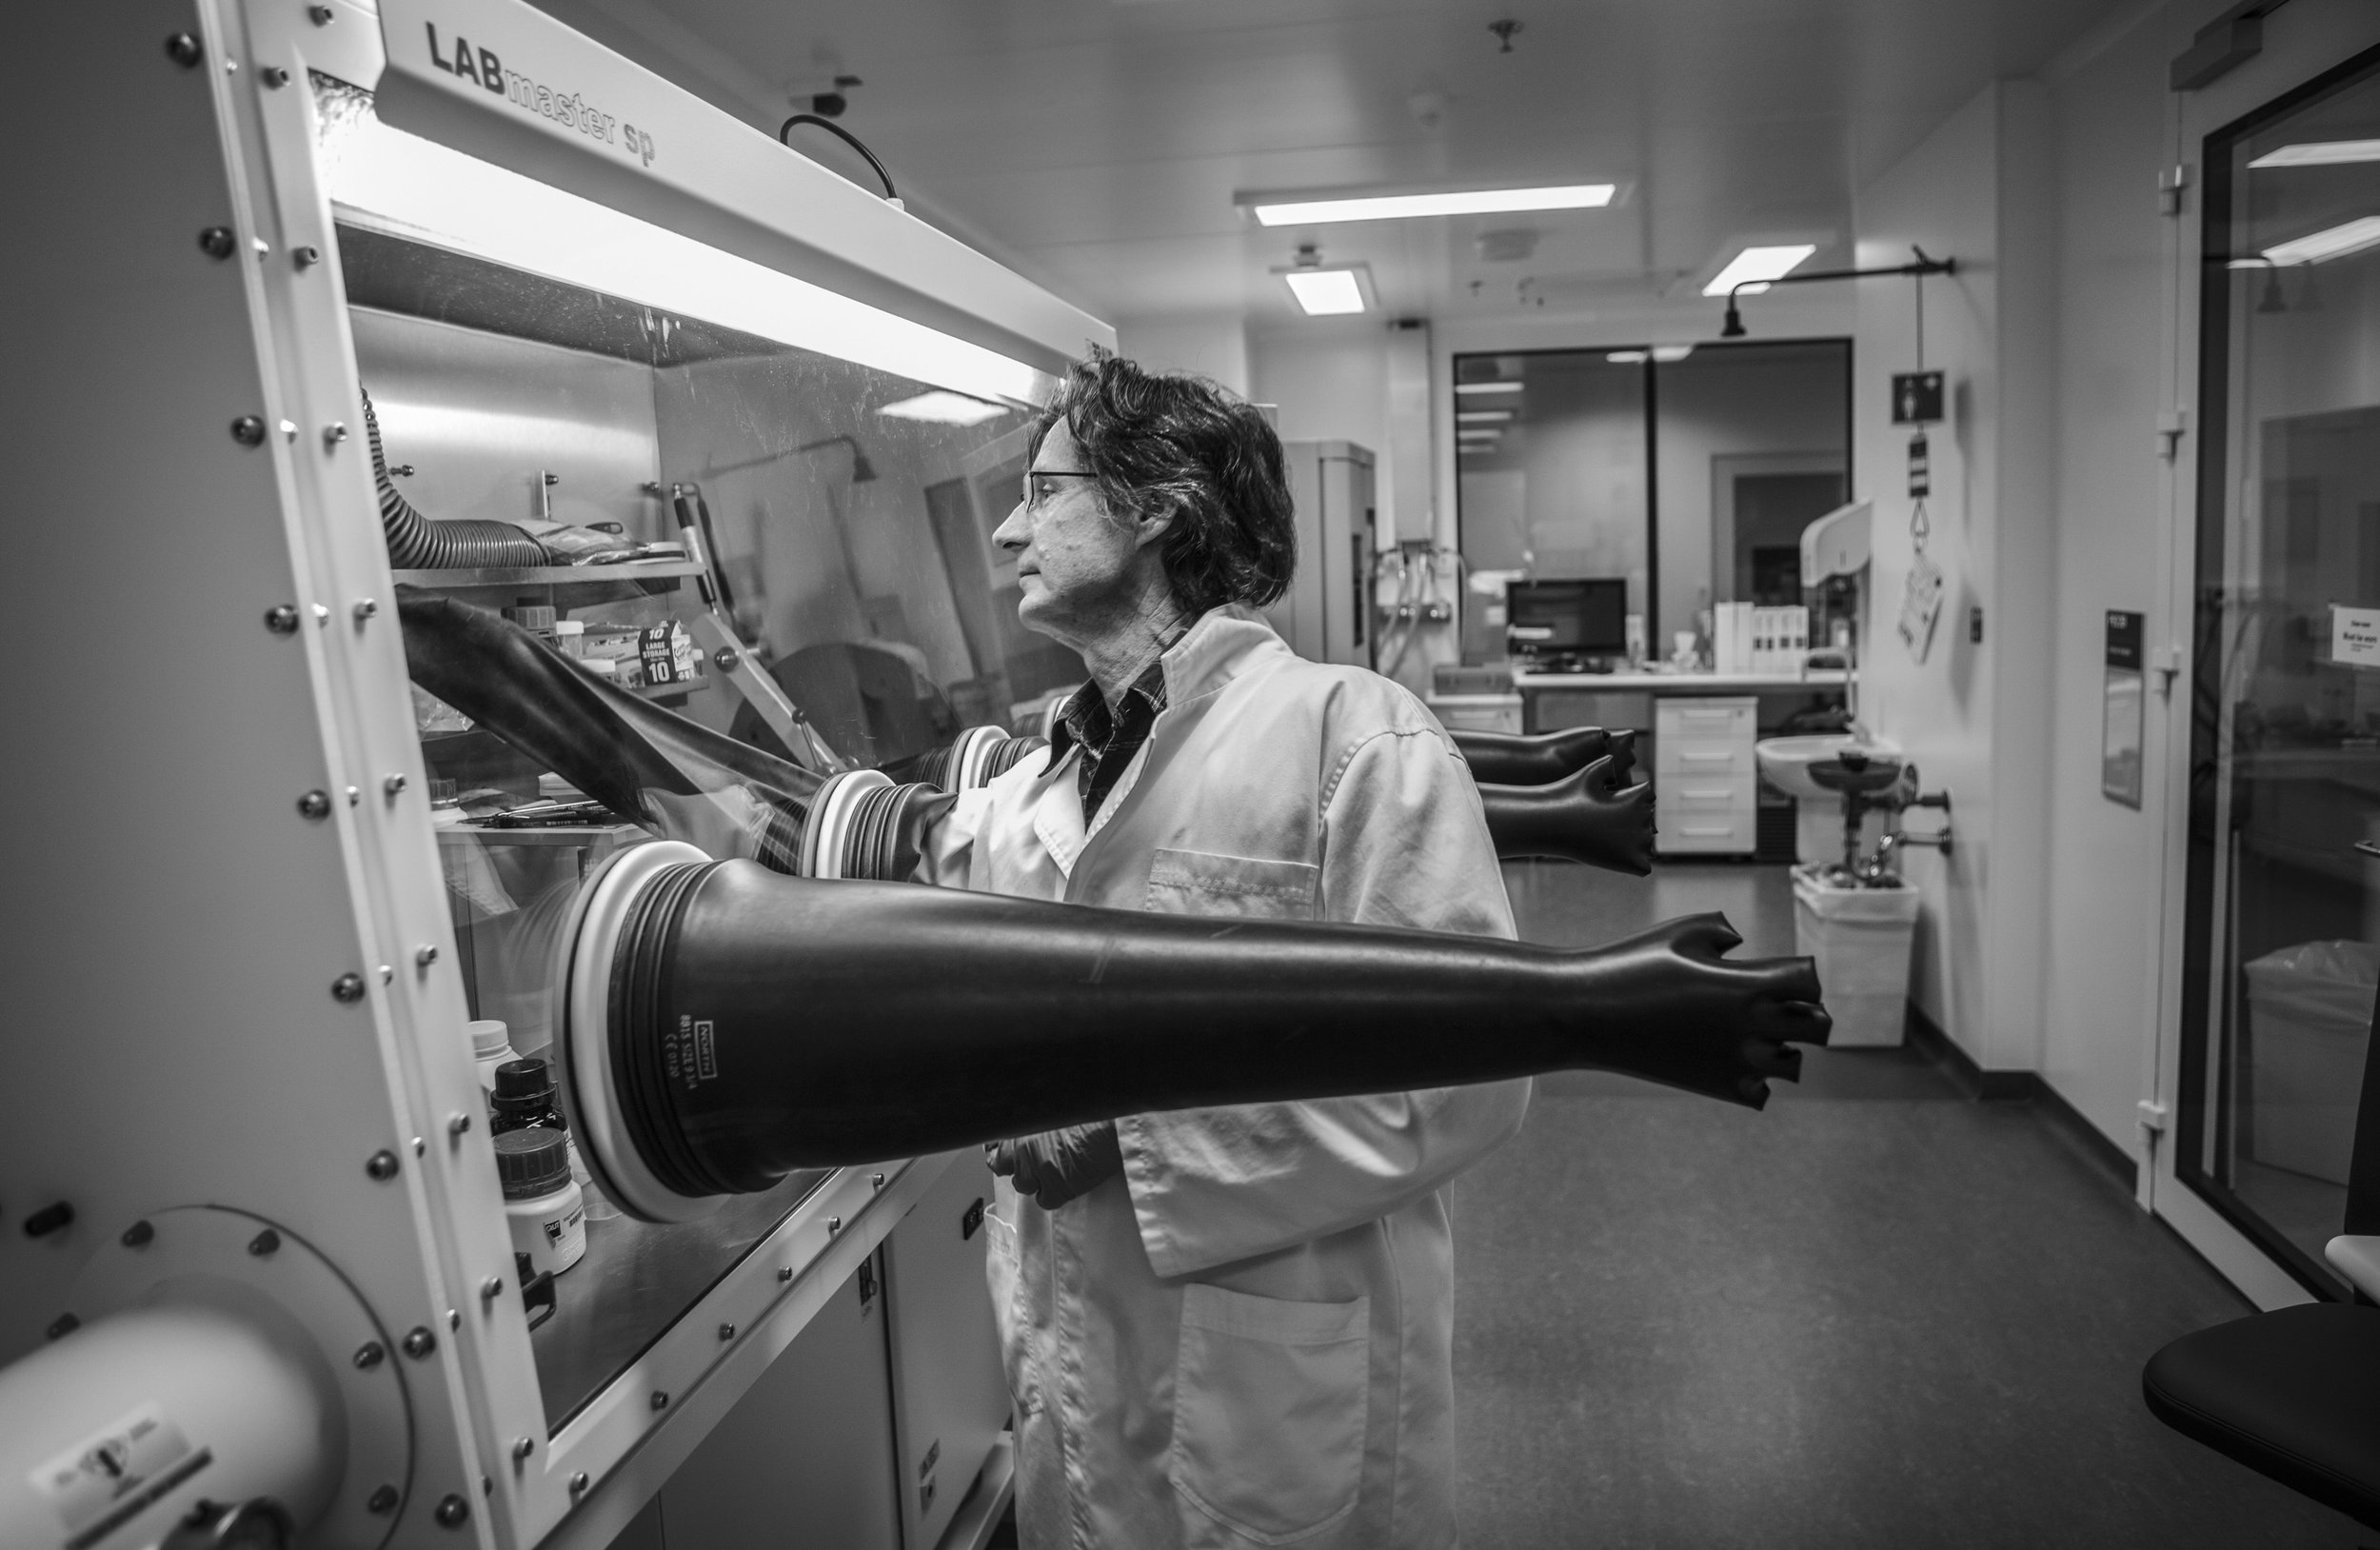 QUT Science & Engineering Centre, Brisbane, Queensland. Australia. Mark Quinlan Project Officer, The Glove Box,Working Area with Controlled environment.  © Russell Shakespeare/The Magnum Foundation 2018